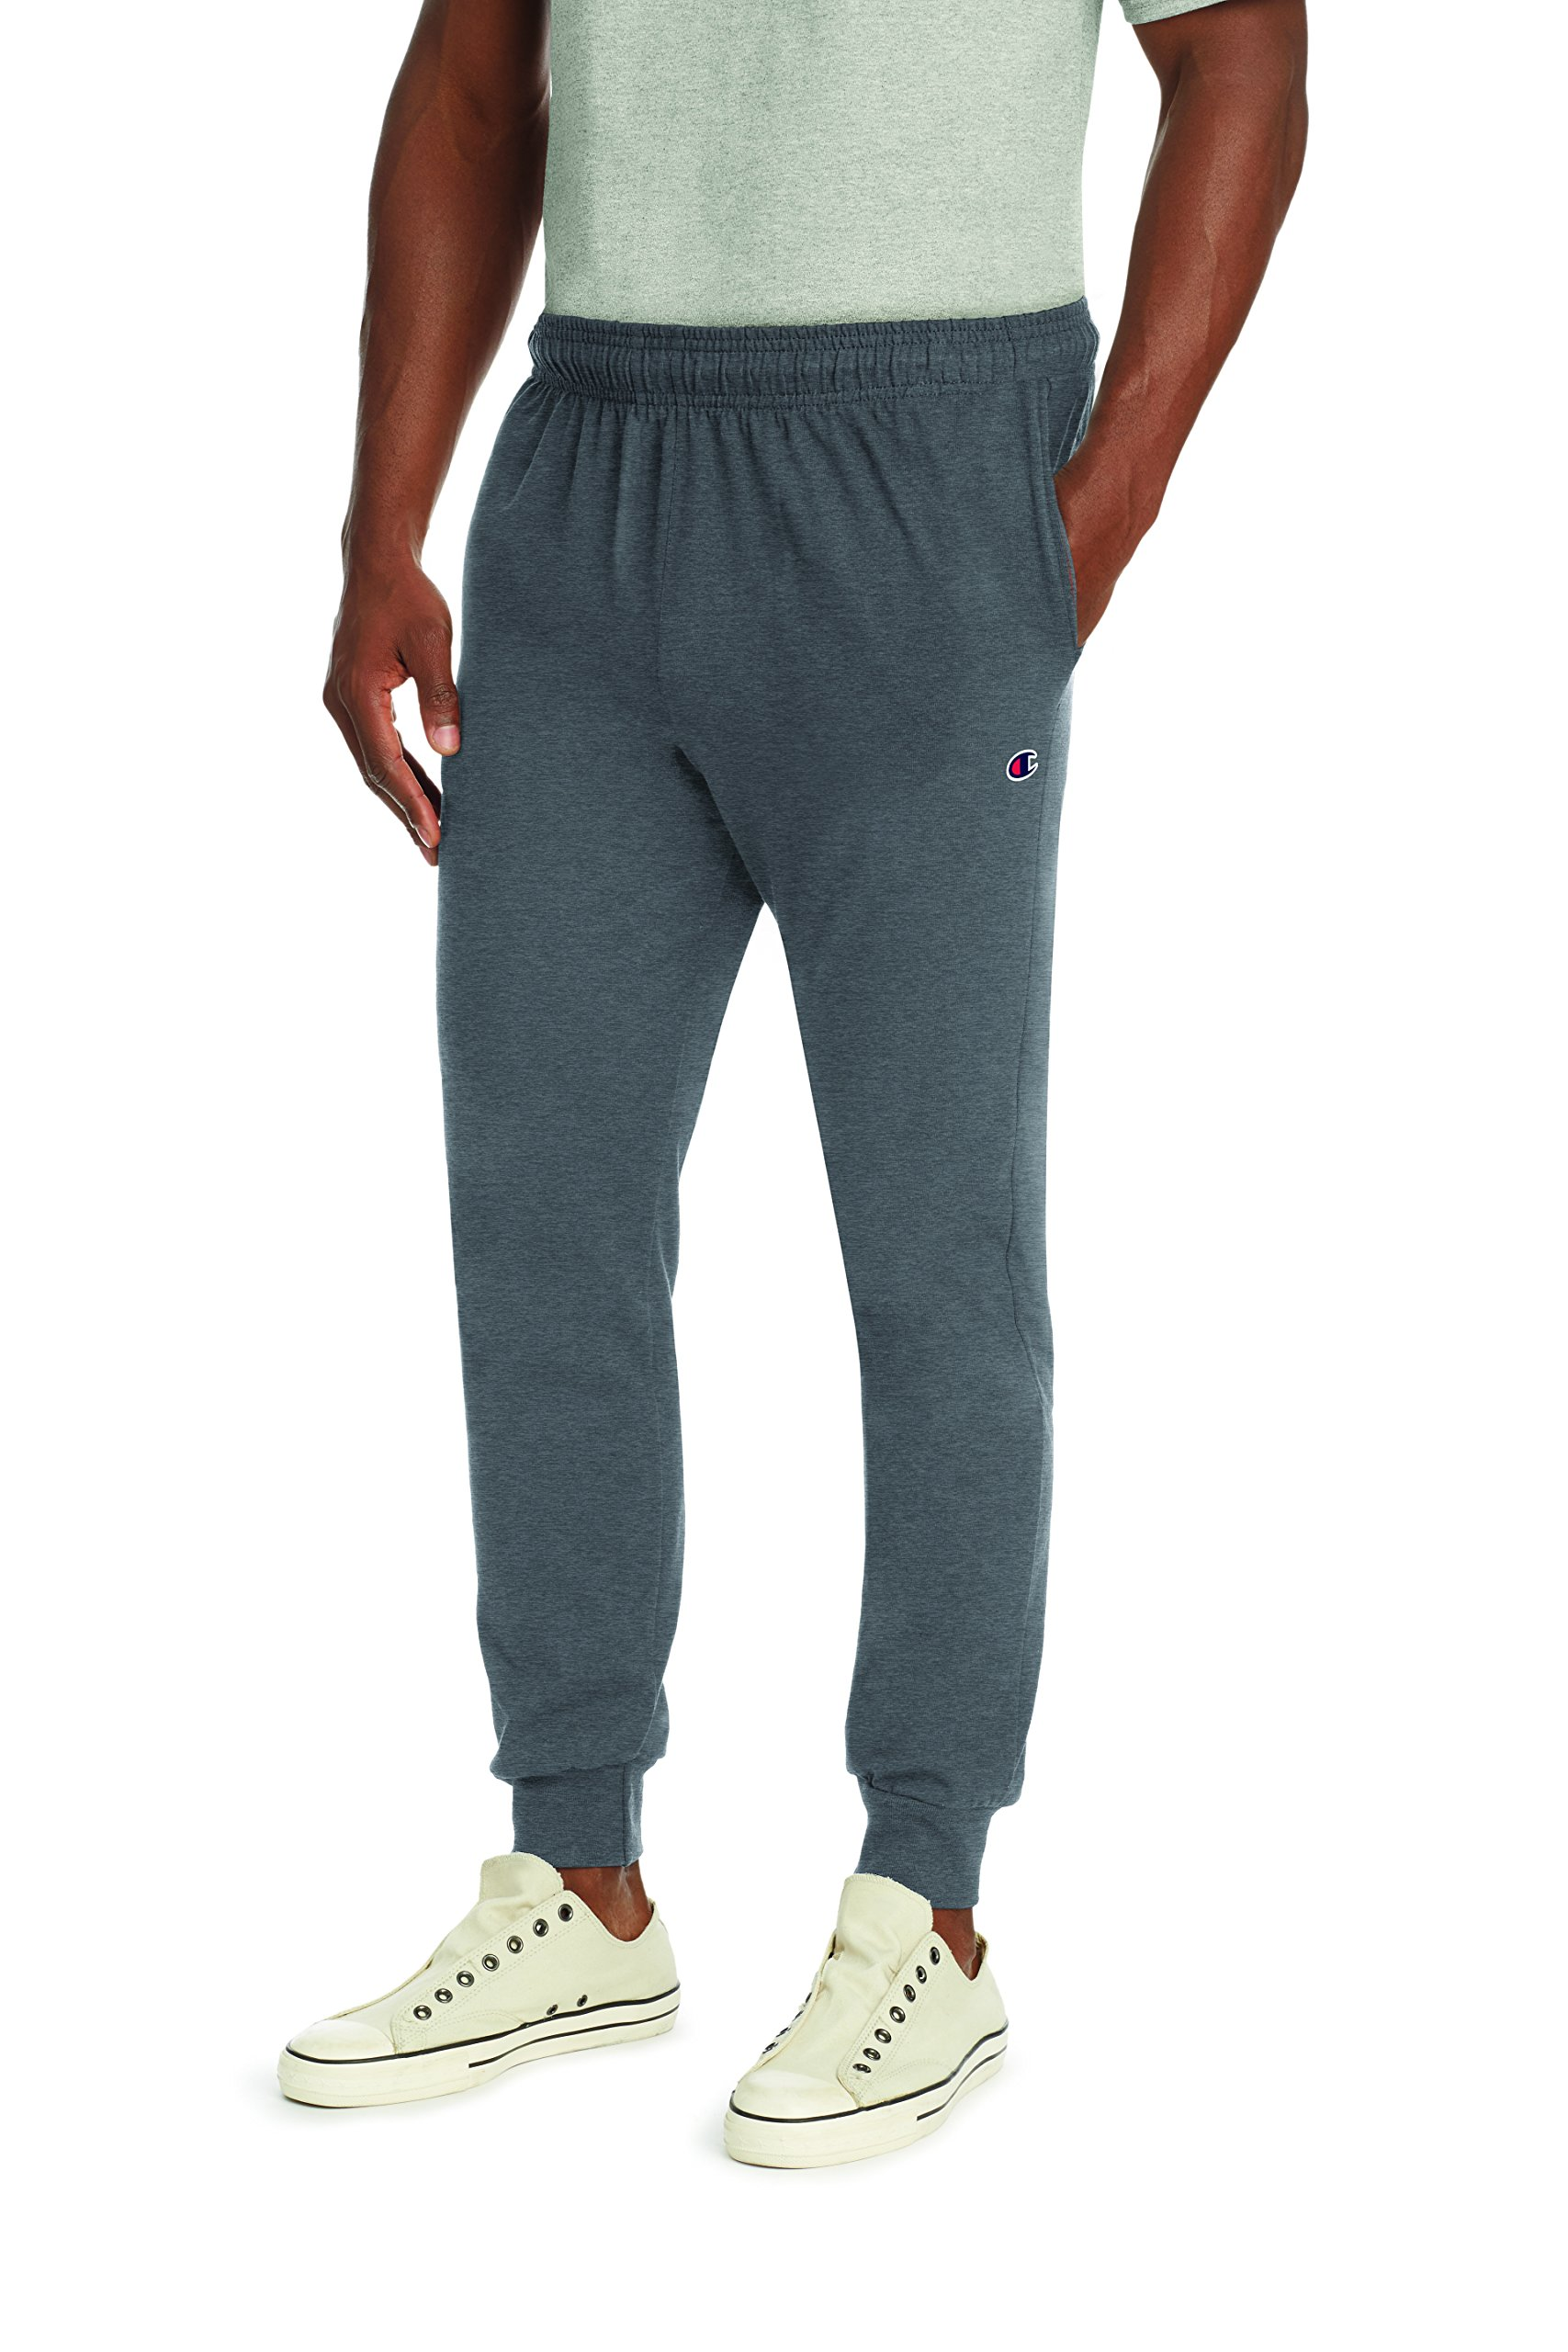 Champion Men's Jersey Jogger, Granite Heather, M by Champion